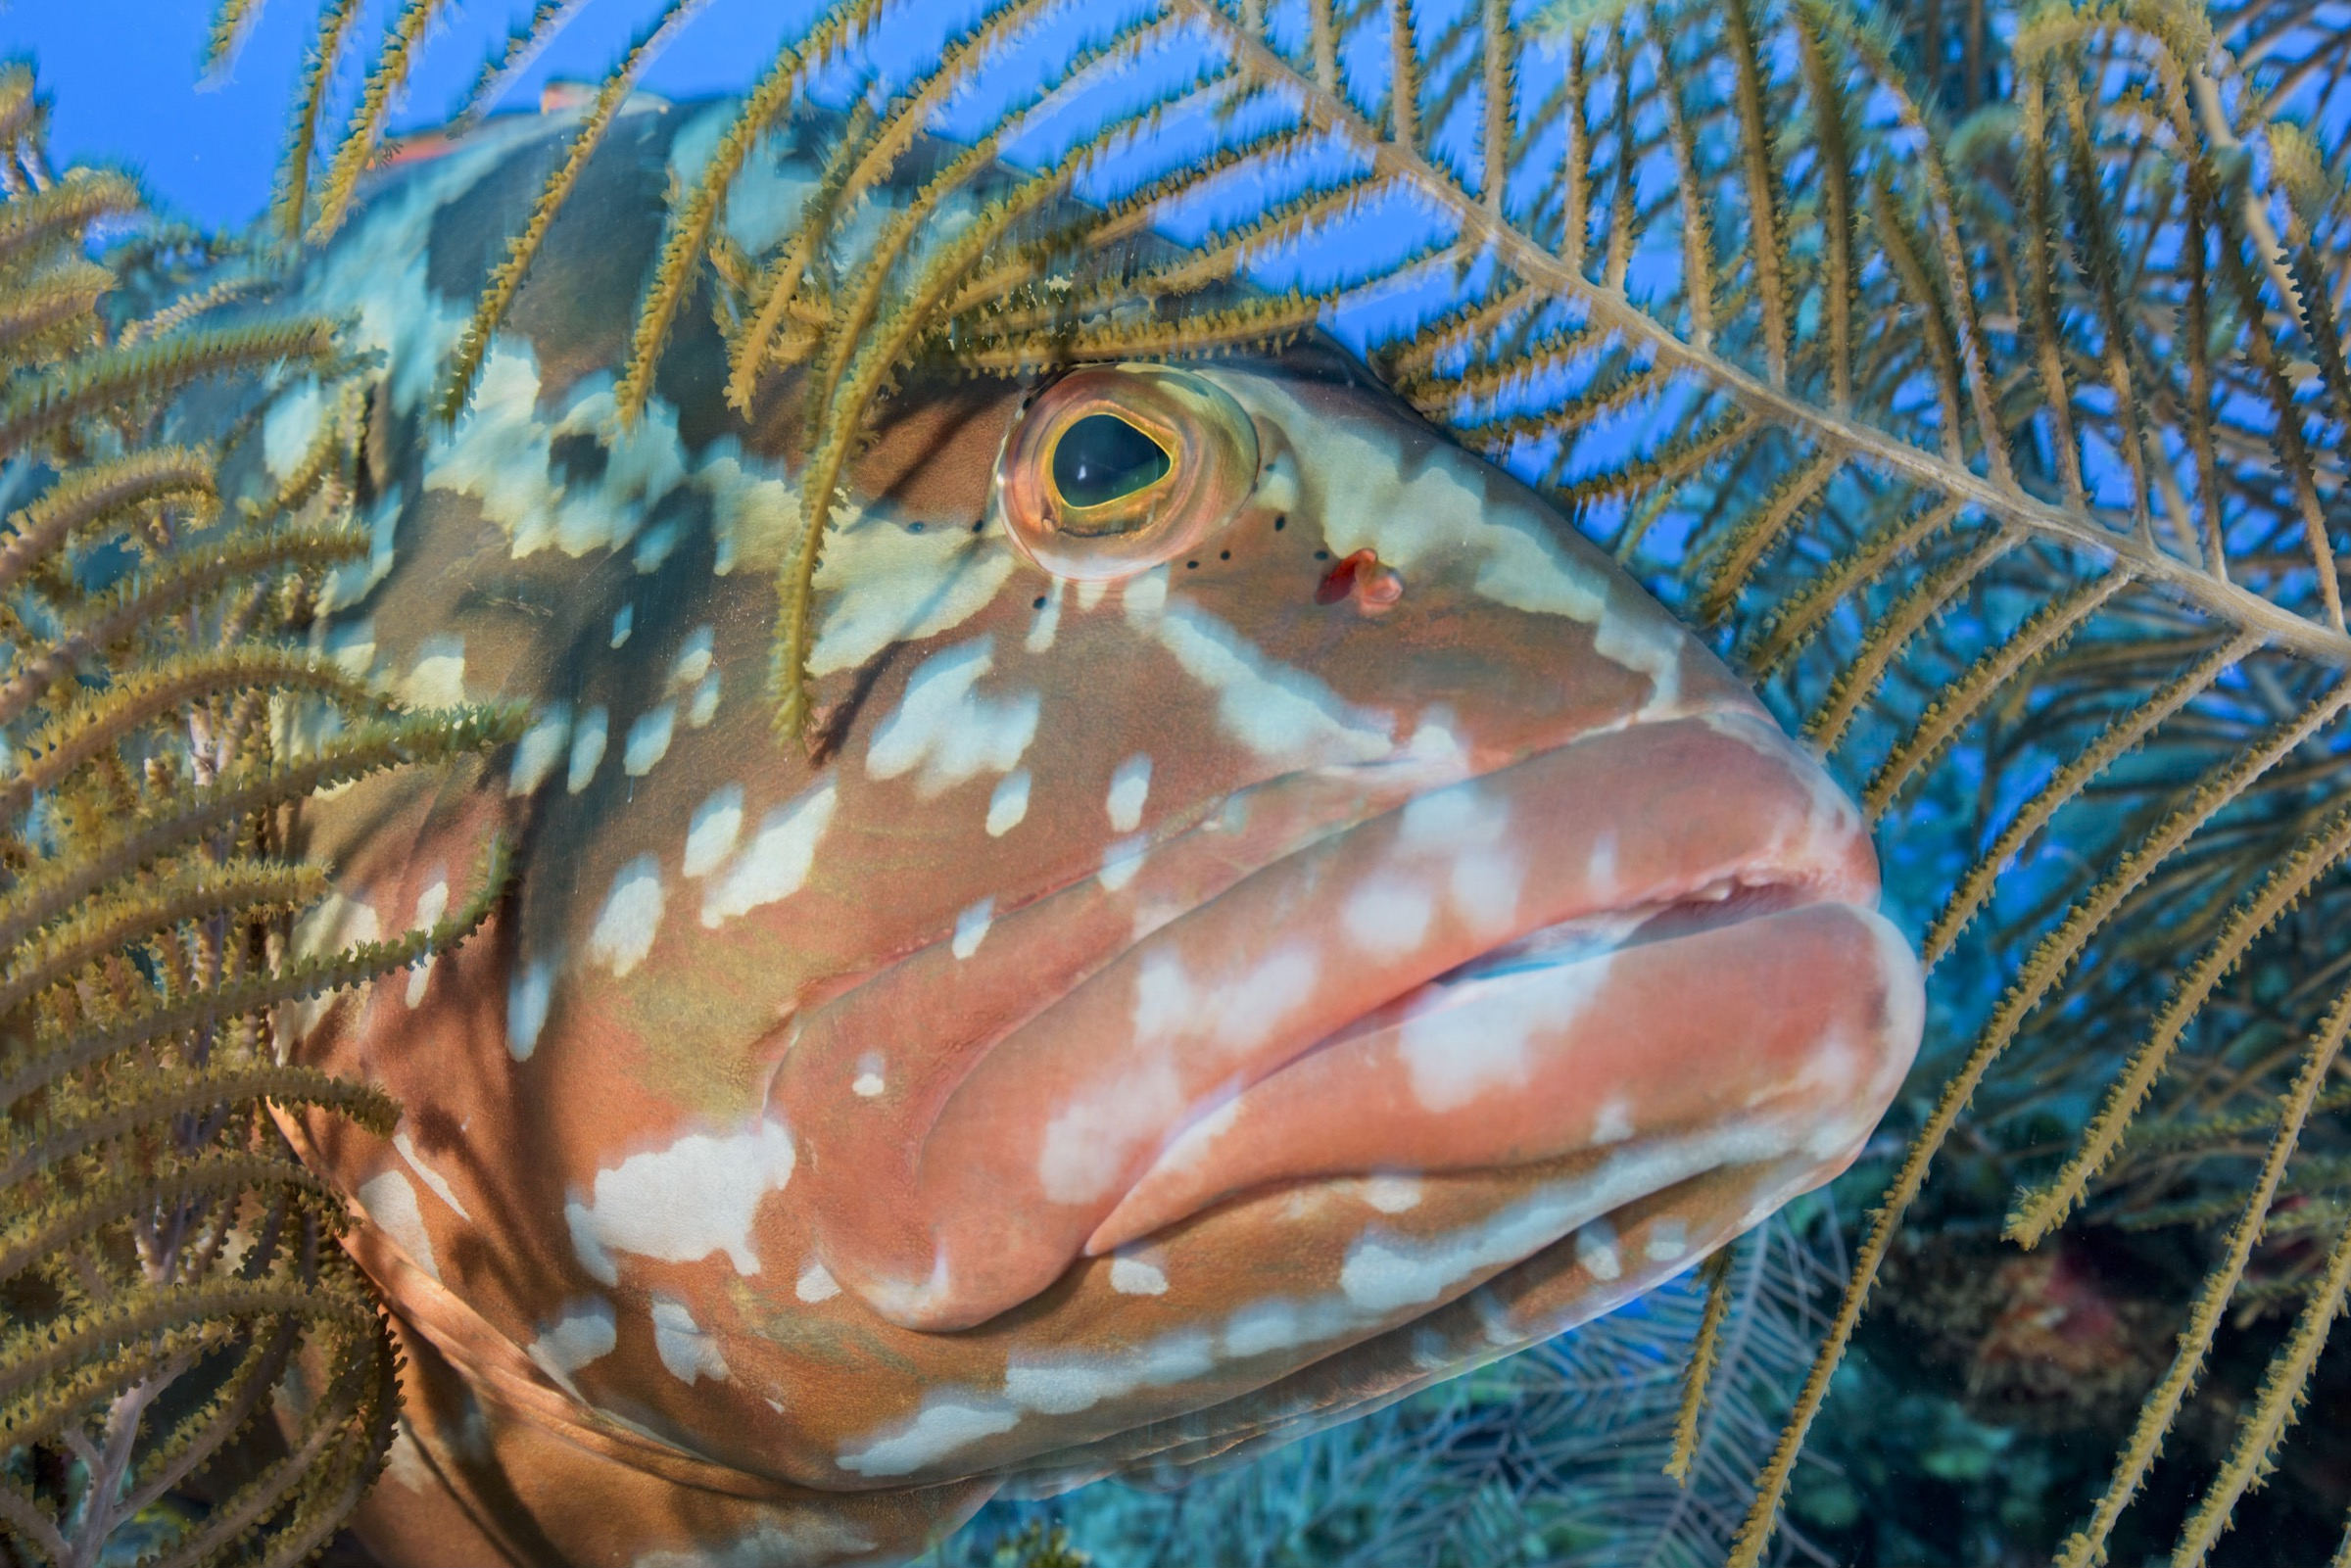 Large predatory fish, like this Nassau grouper (Epinephelus striatus) that biologist and photographer Octavio Aburto encountered in the Gardens of the Queen, were far less wary than those he's photographed in other parts of the world.